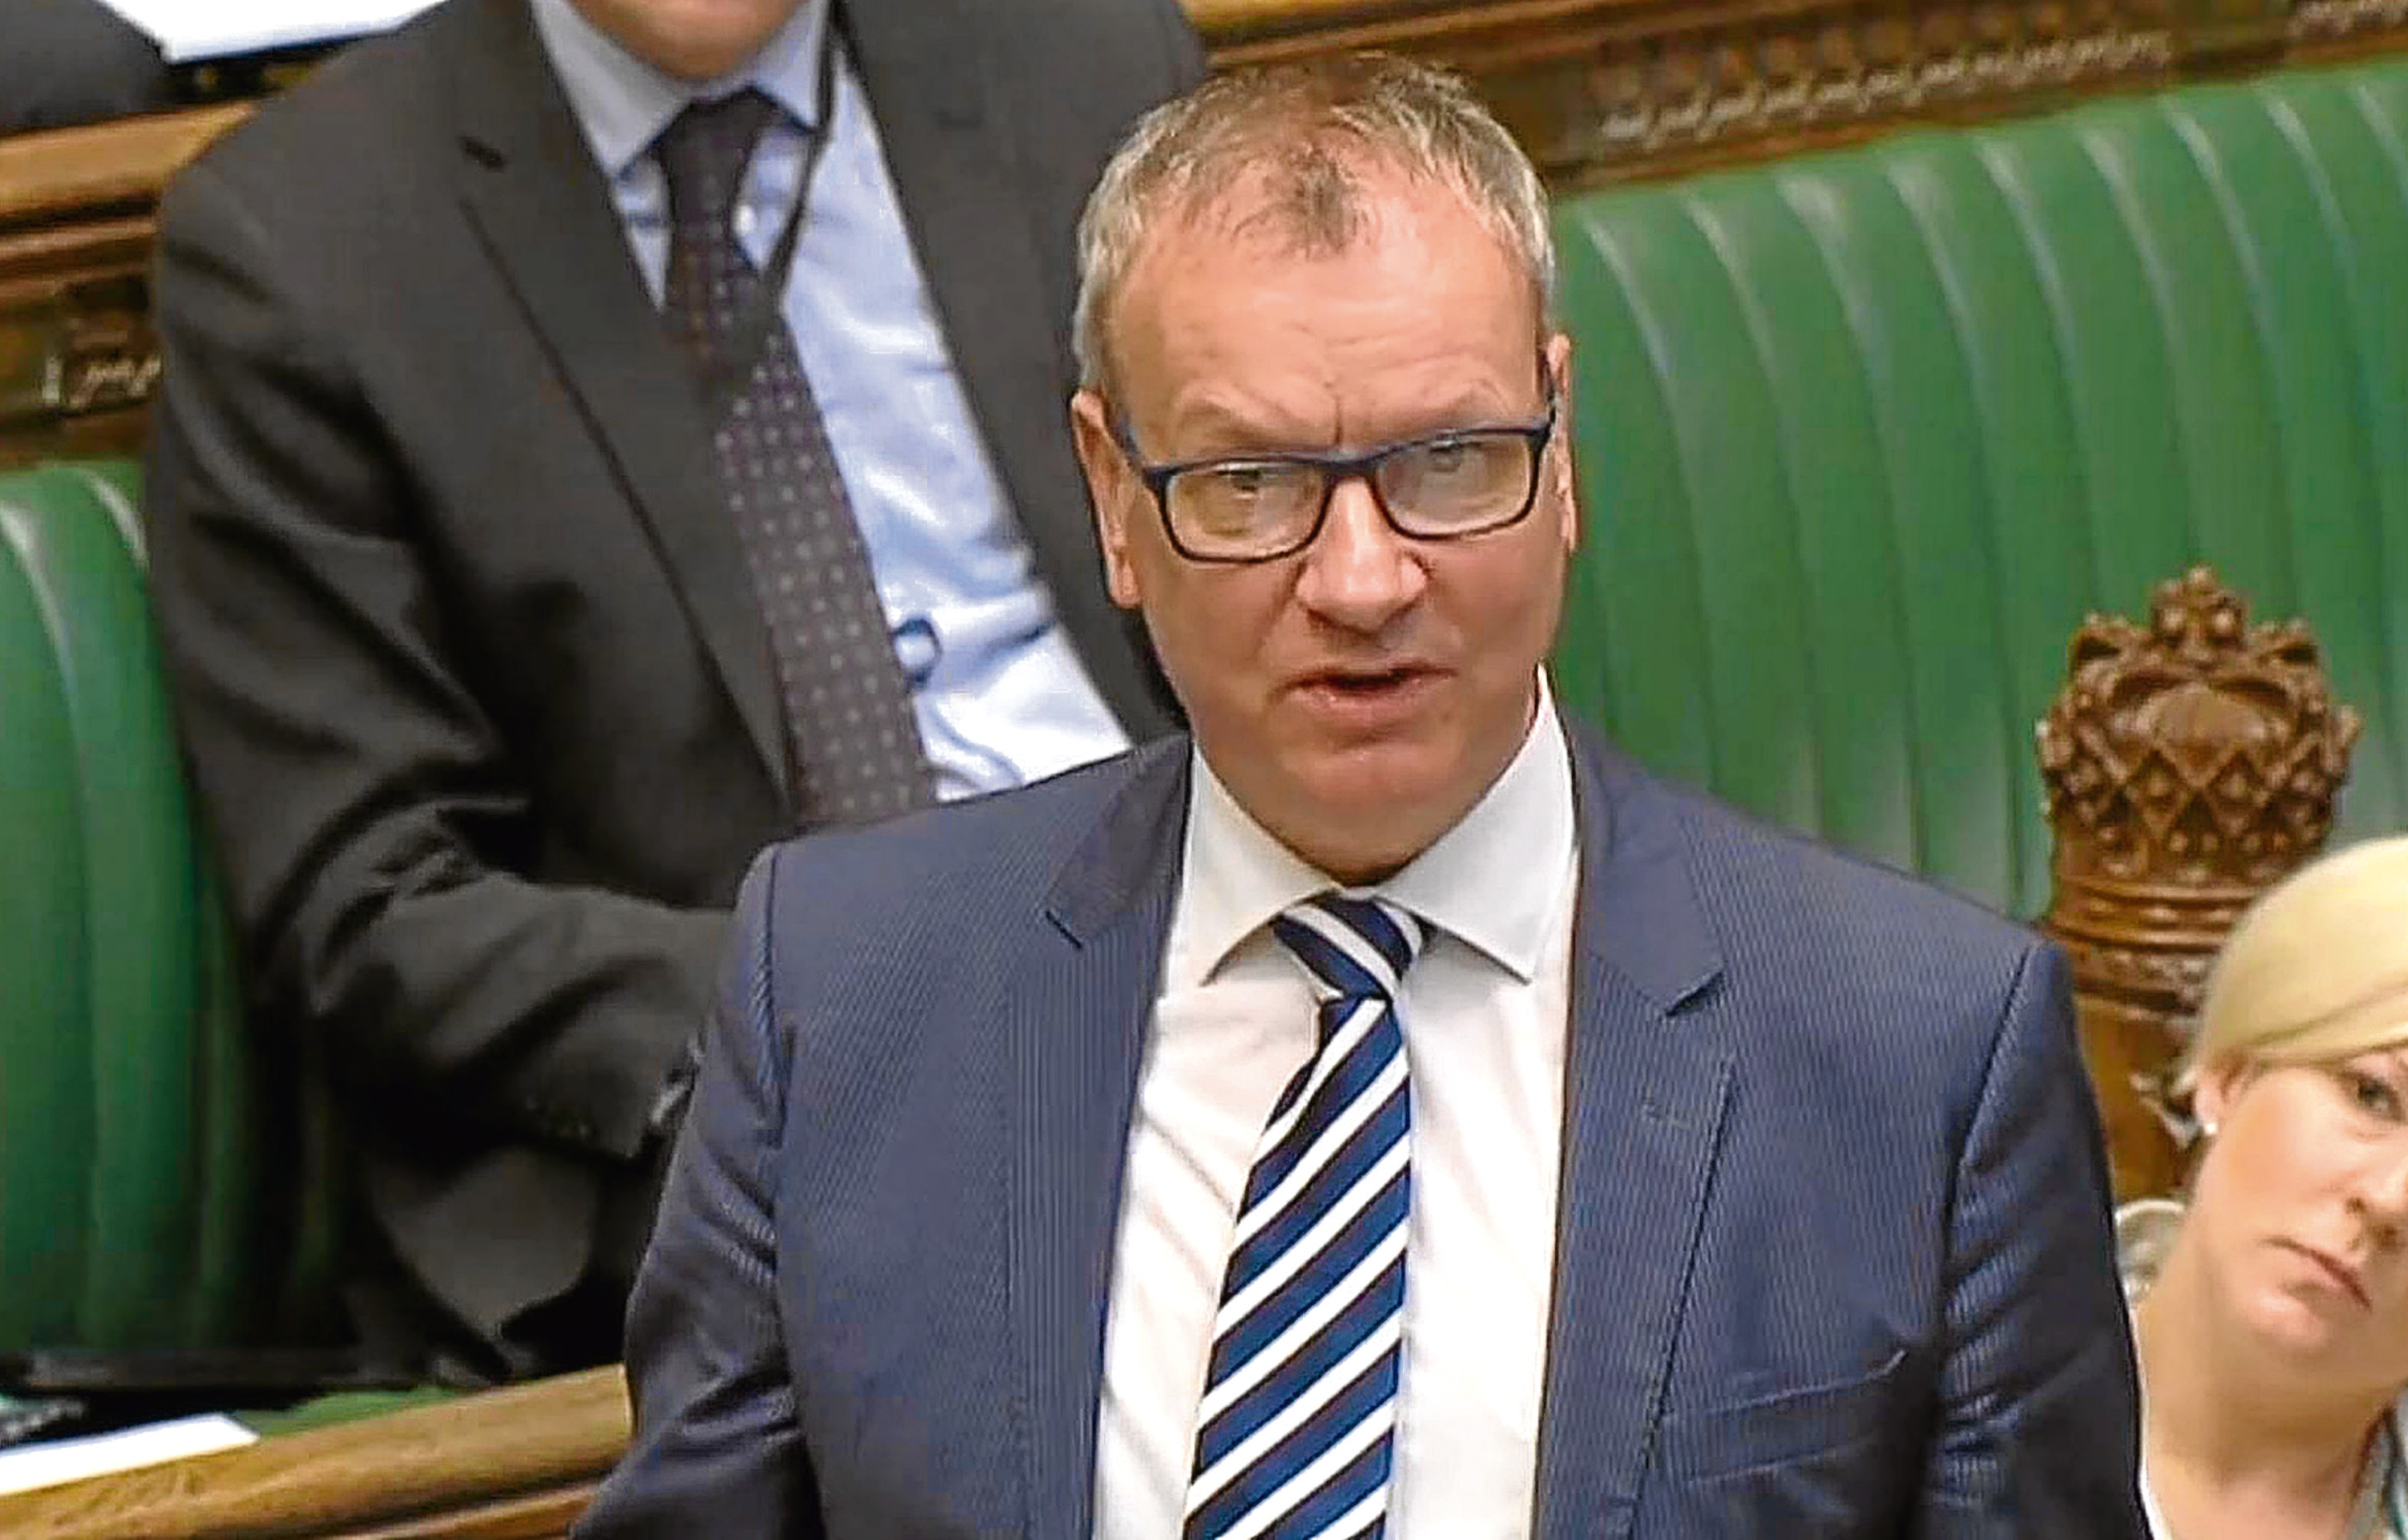 SNP Perth and North Perthshire MP Pete Wishart speaks in the House of Commons.